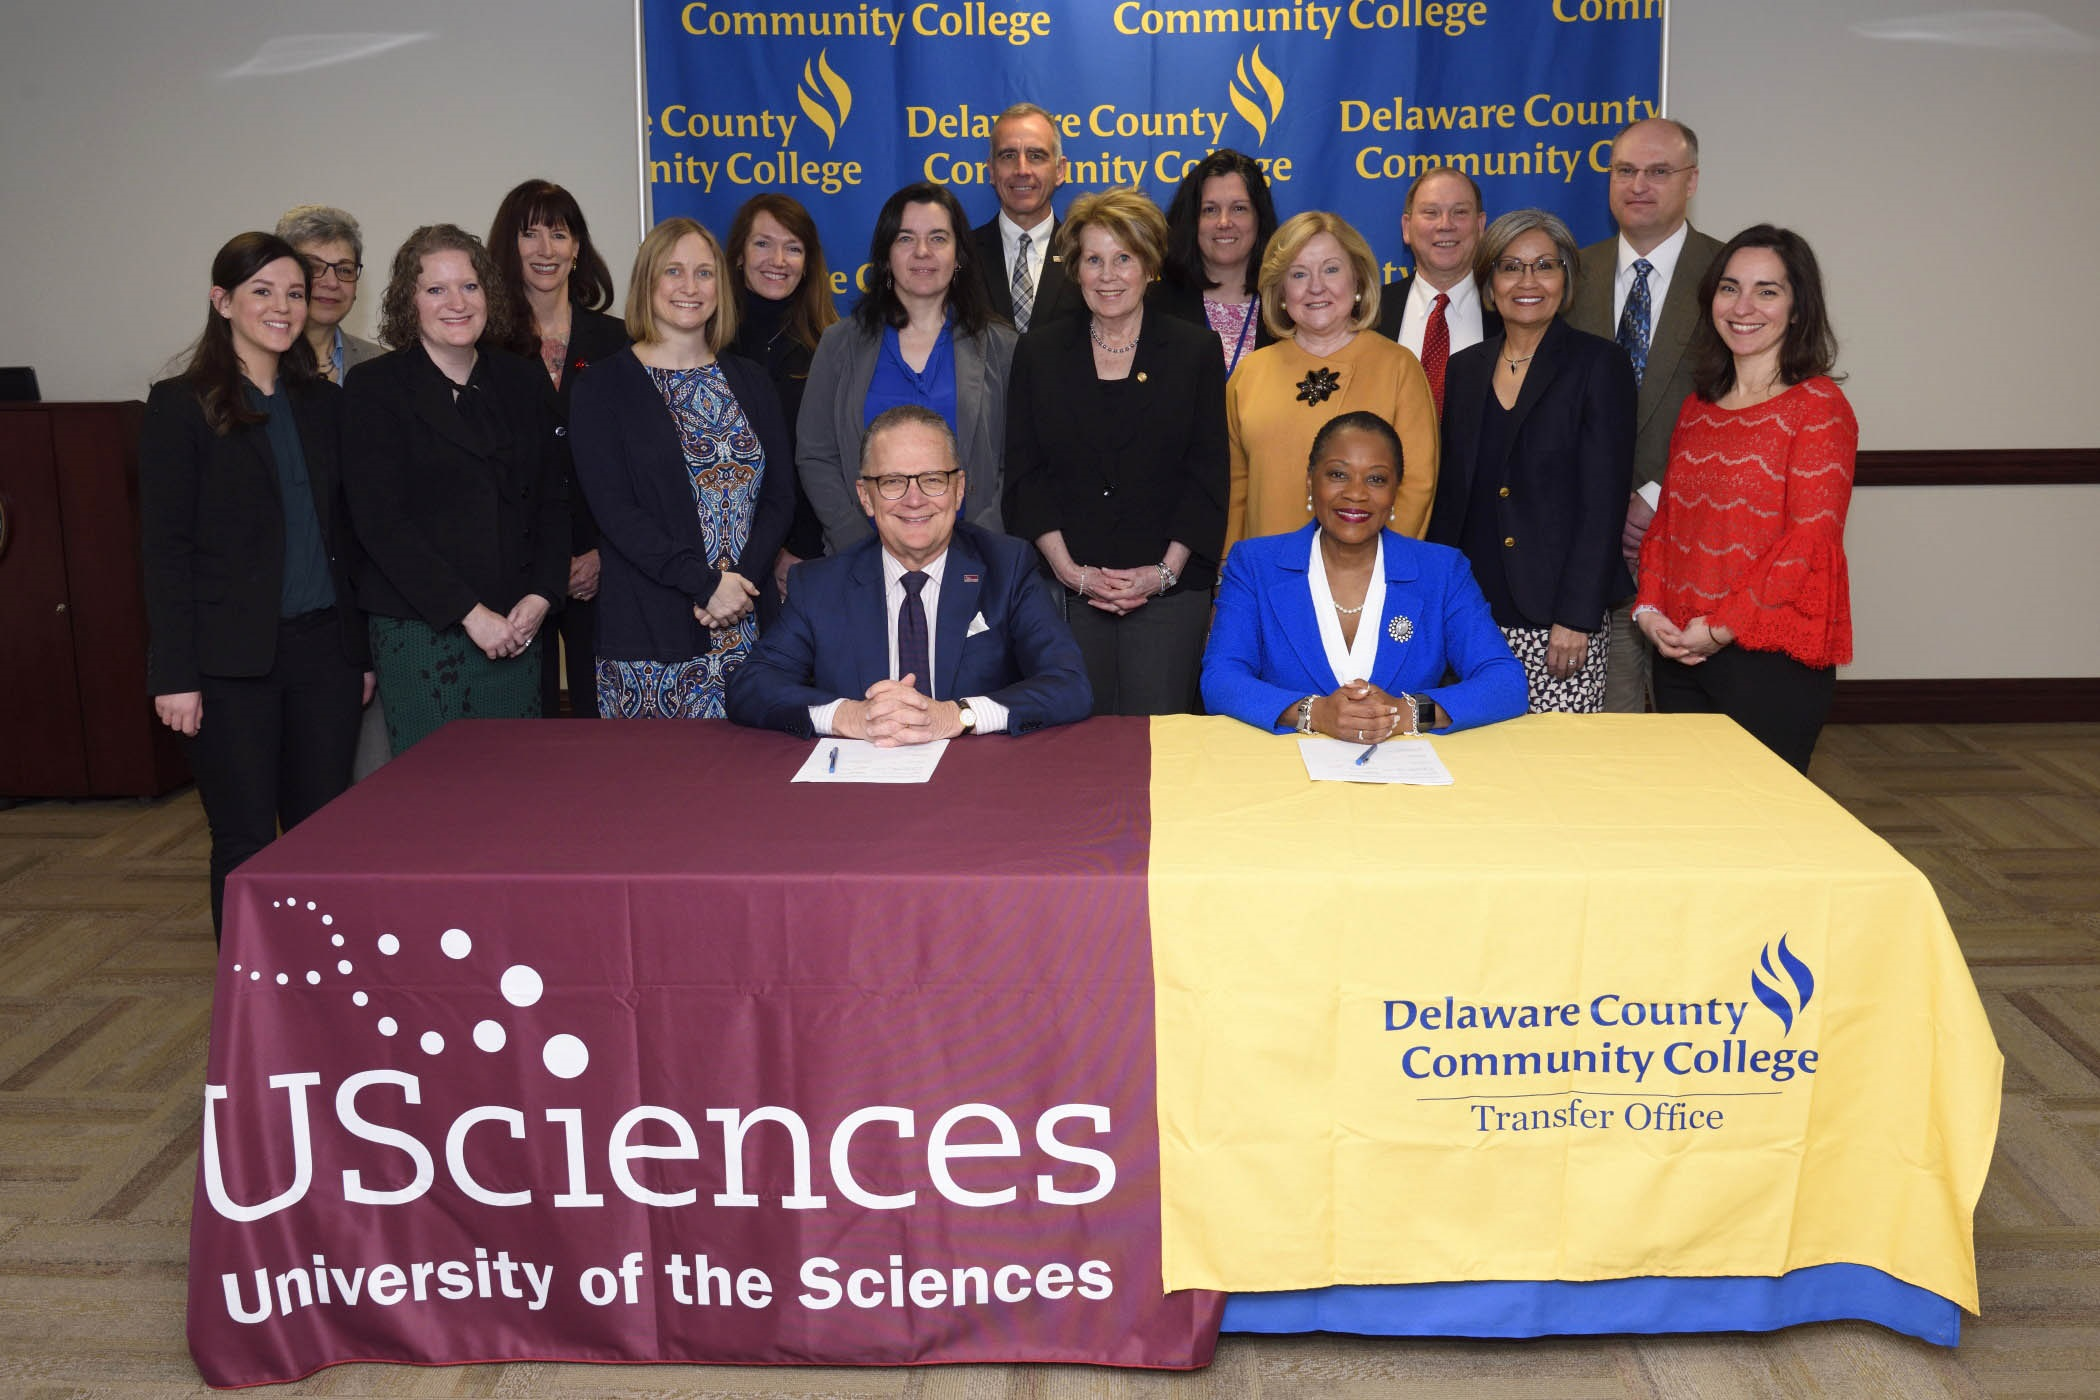 University Of The Sciences Delaware County Community College Sign